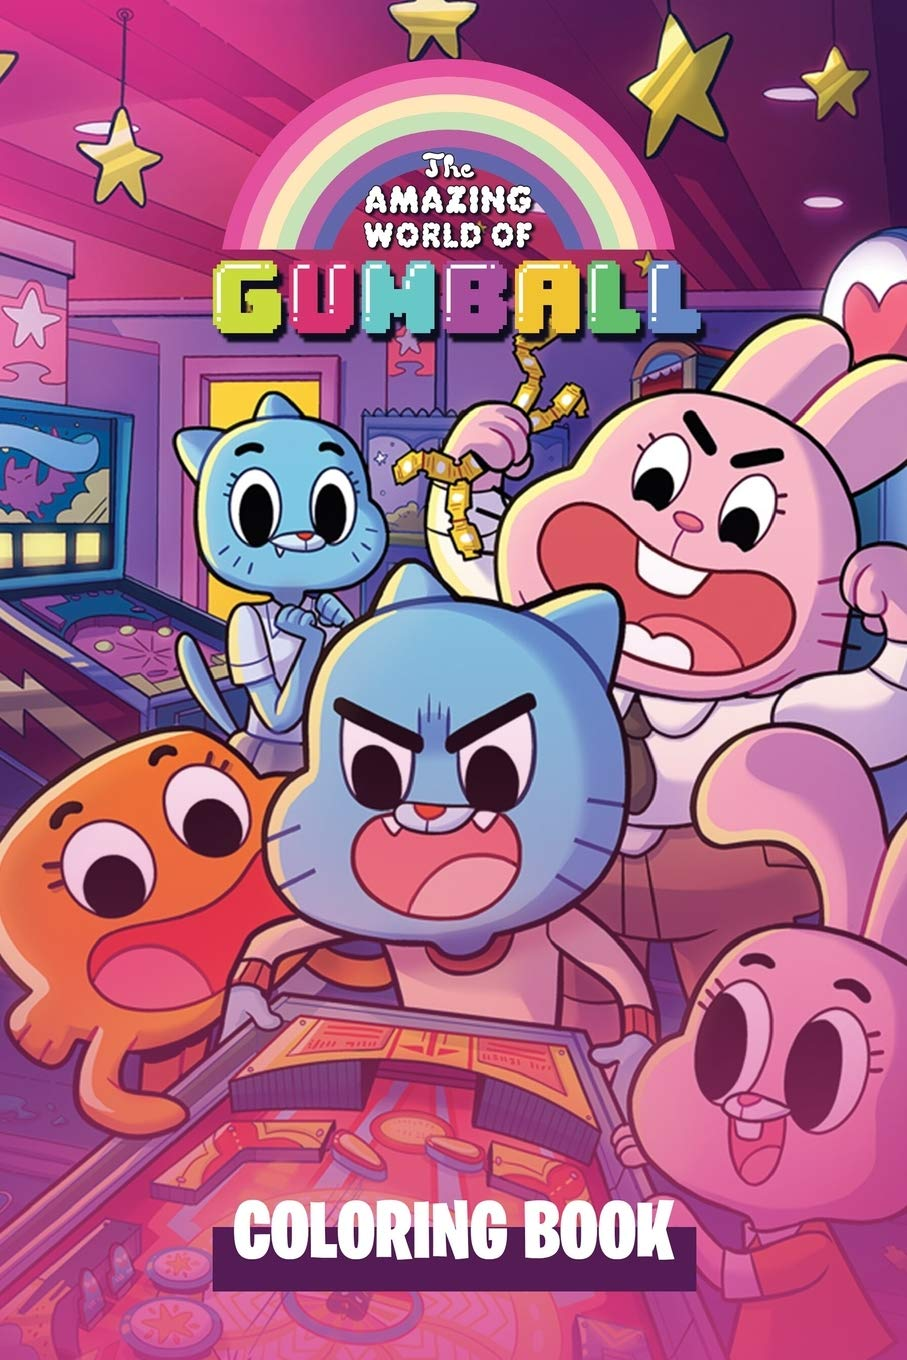 Amazing World Of Gumball Coloring Book Watterson Family Coloring Book Printable Coloring Sheets Cartooon Network Coloring Book And Activity For Kids Publishing New 9798642026045 Amazon Com Books